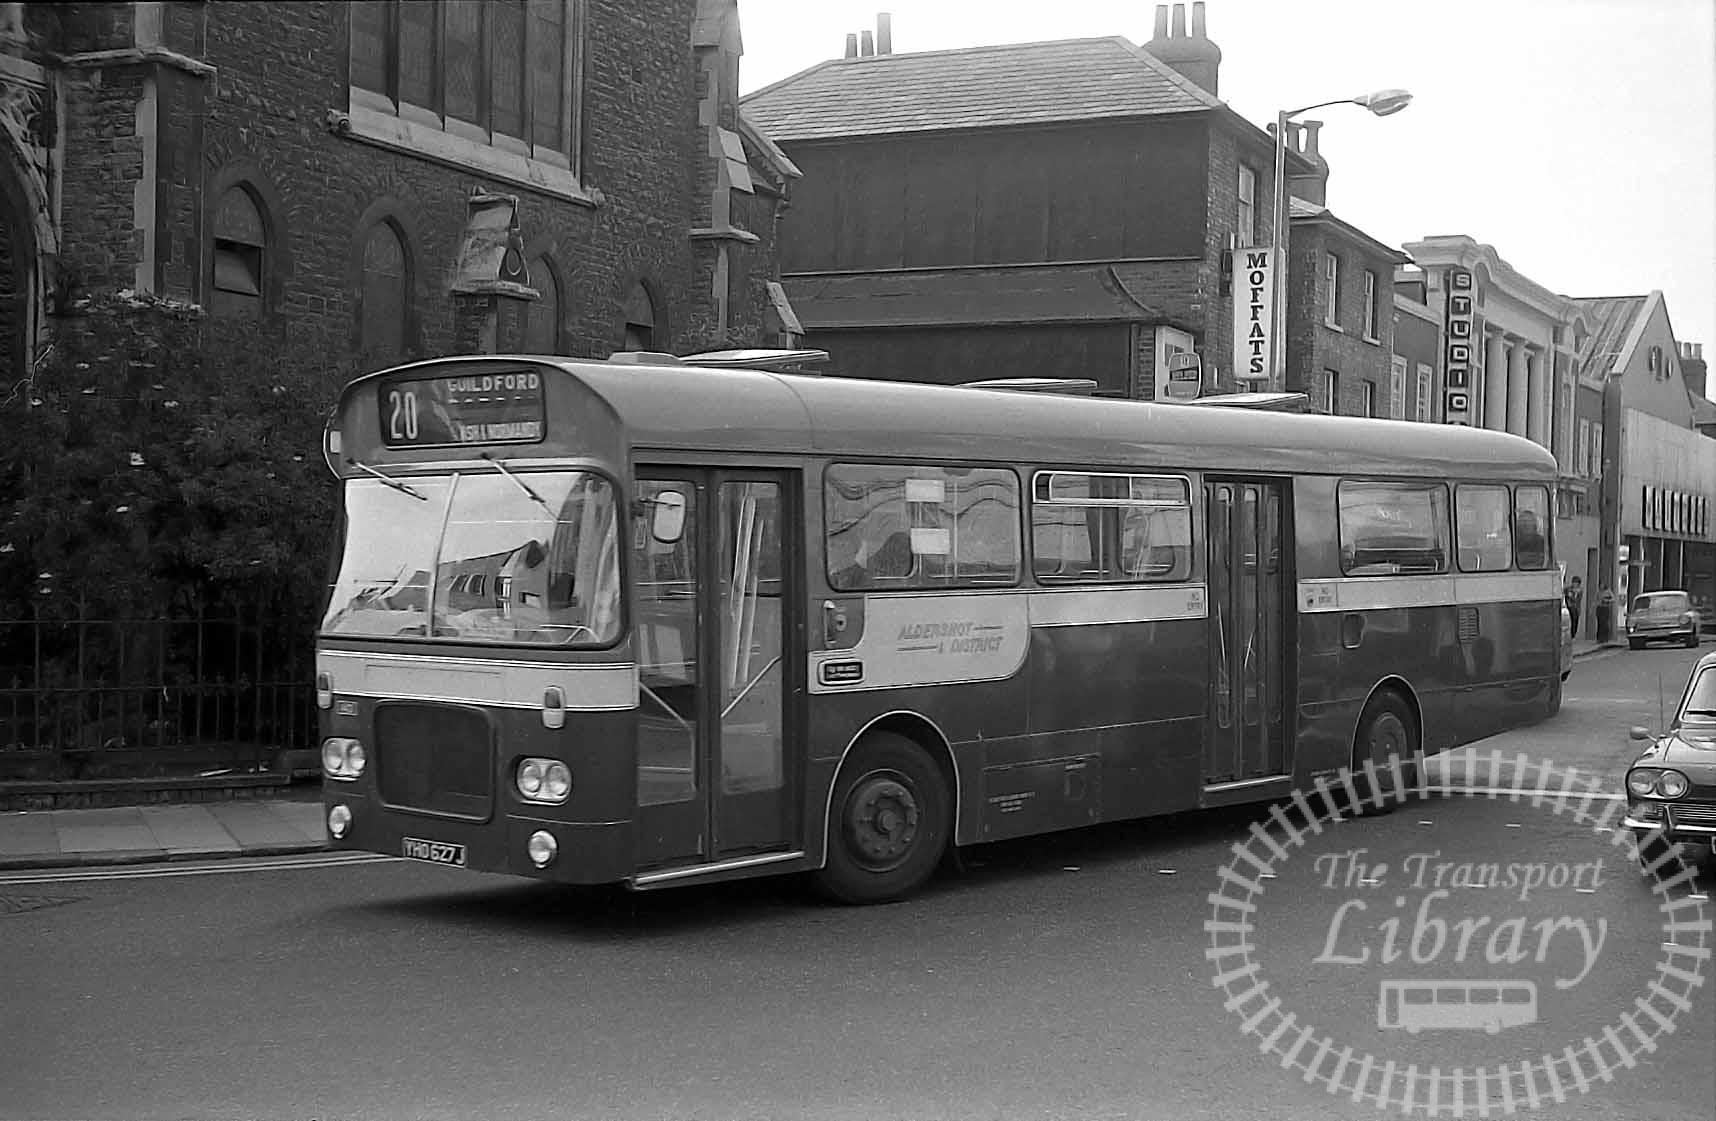 Aldershot and District Bristol RELL YHO627J at Guildford in 1972 on route 20 - Vic Zealey